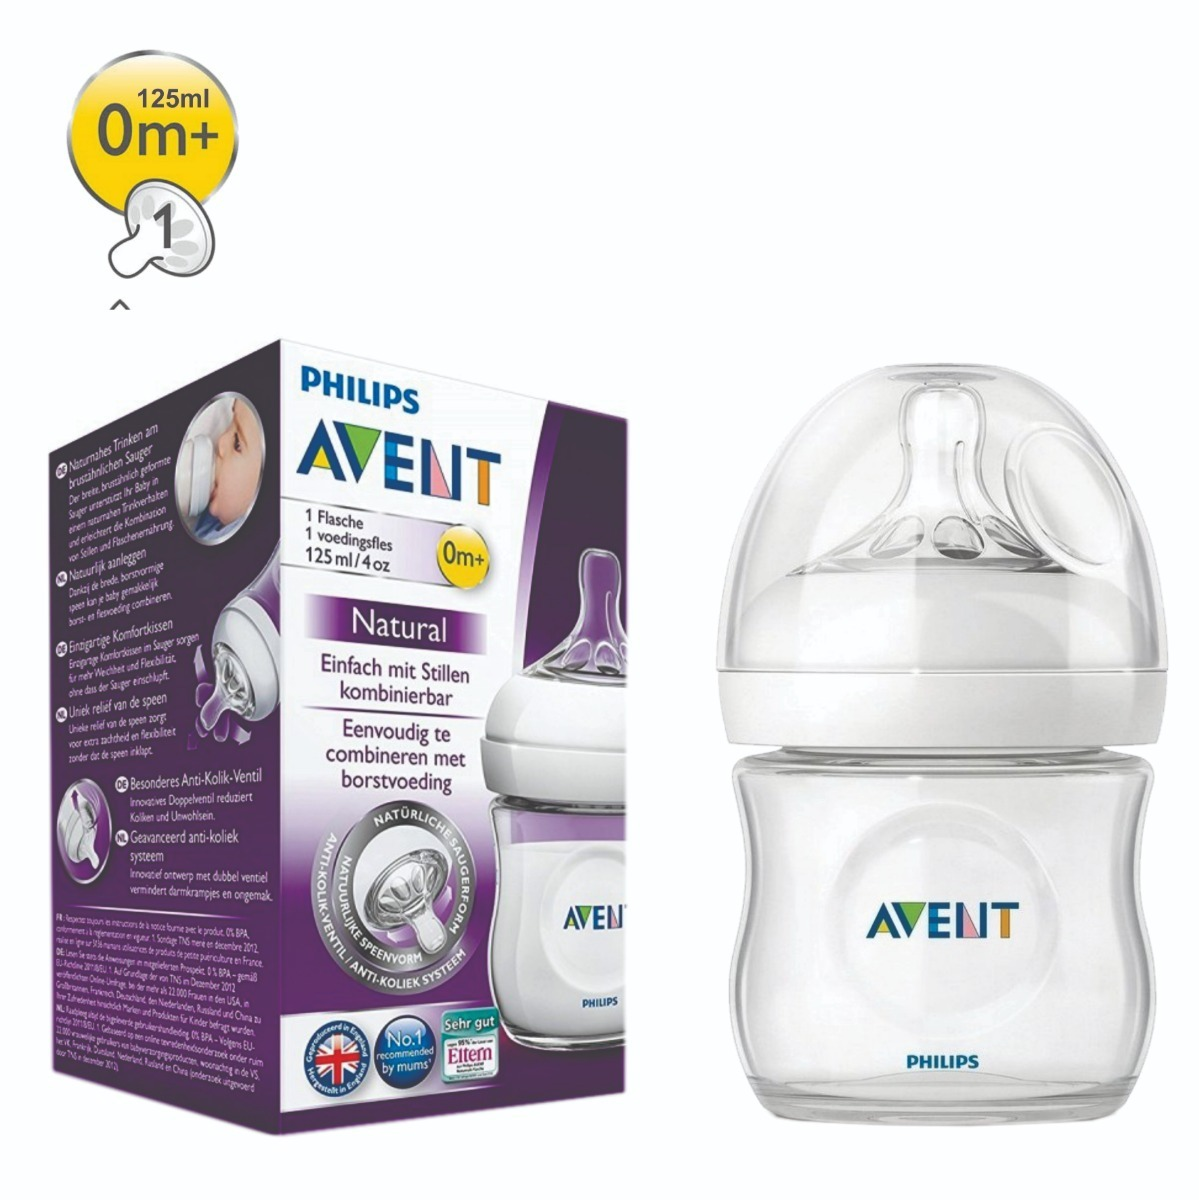 ddbded1a7a5bf mamadera natural 125ml anticolicos avent philips - toymania. Cargando zoom.